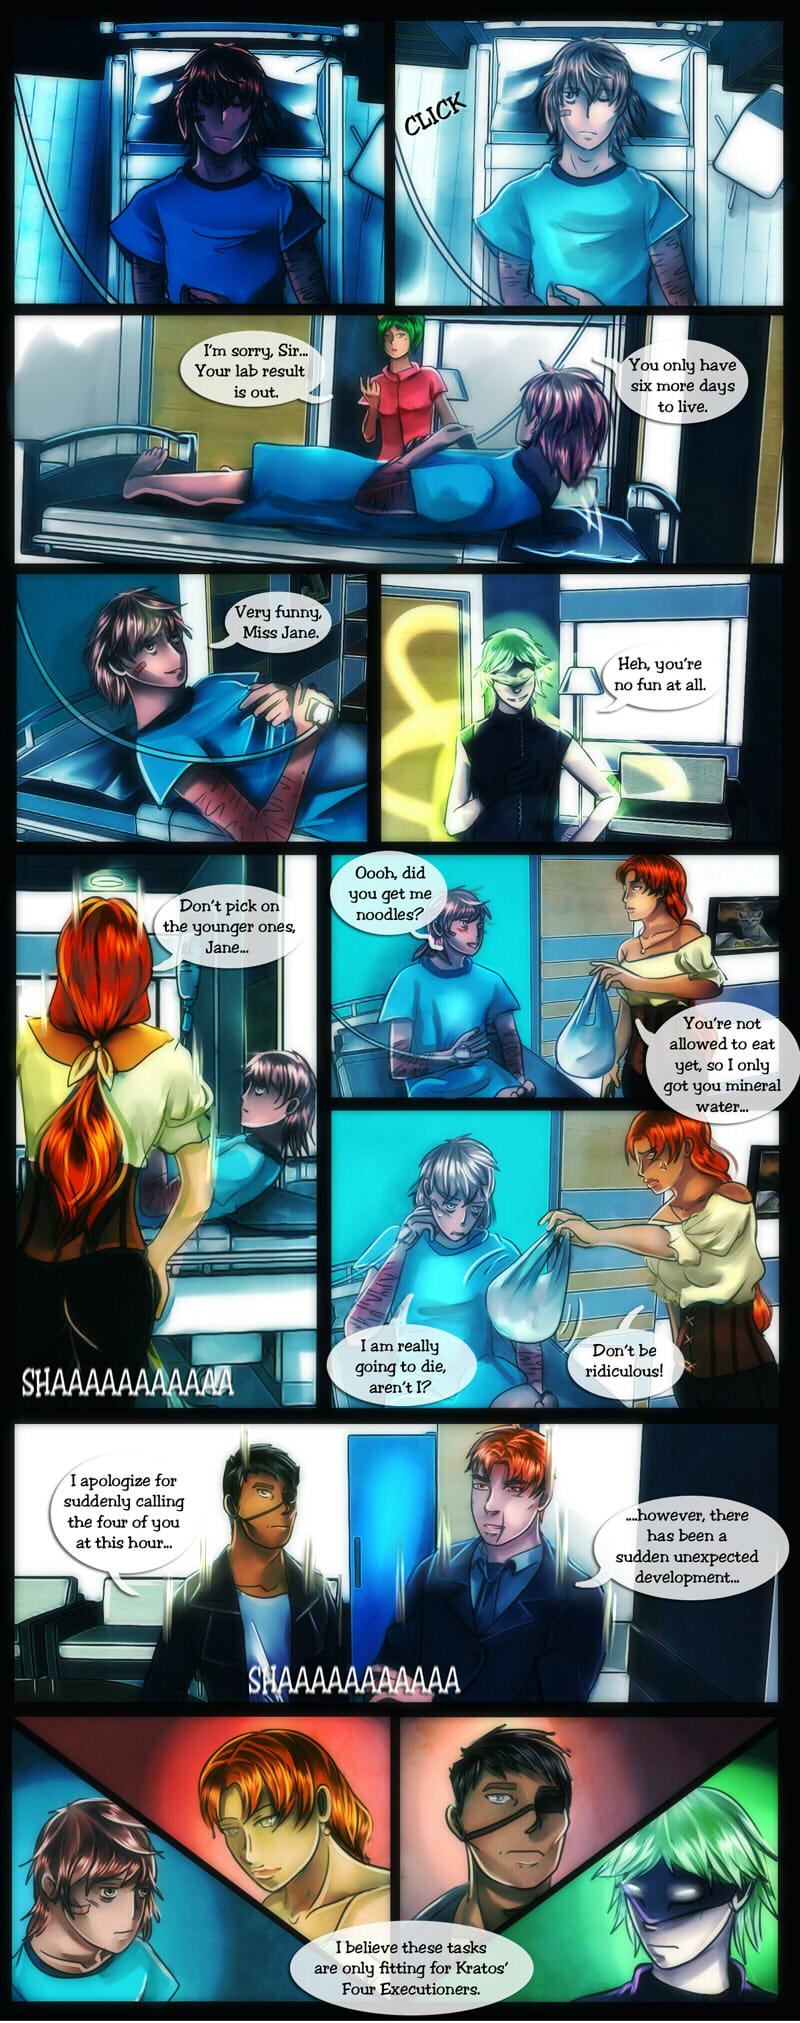 Ch 6 - Pg 2 - The Four Executioners